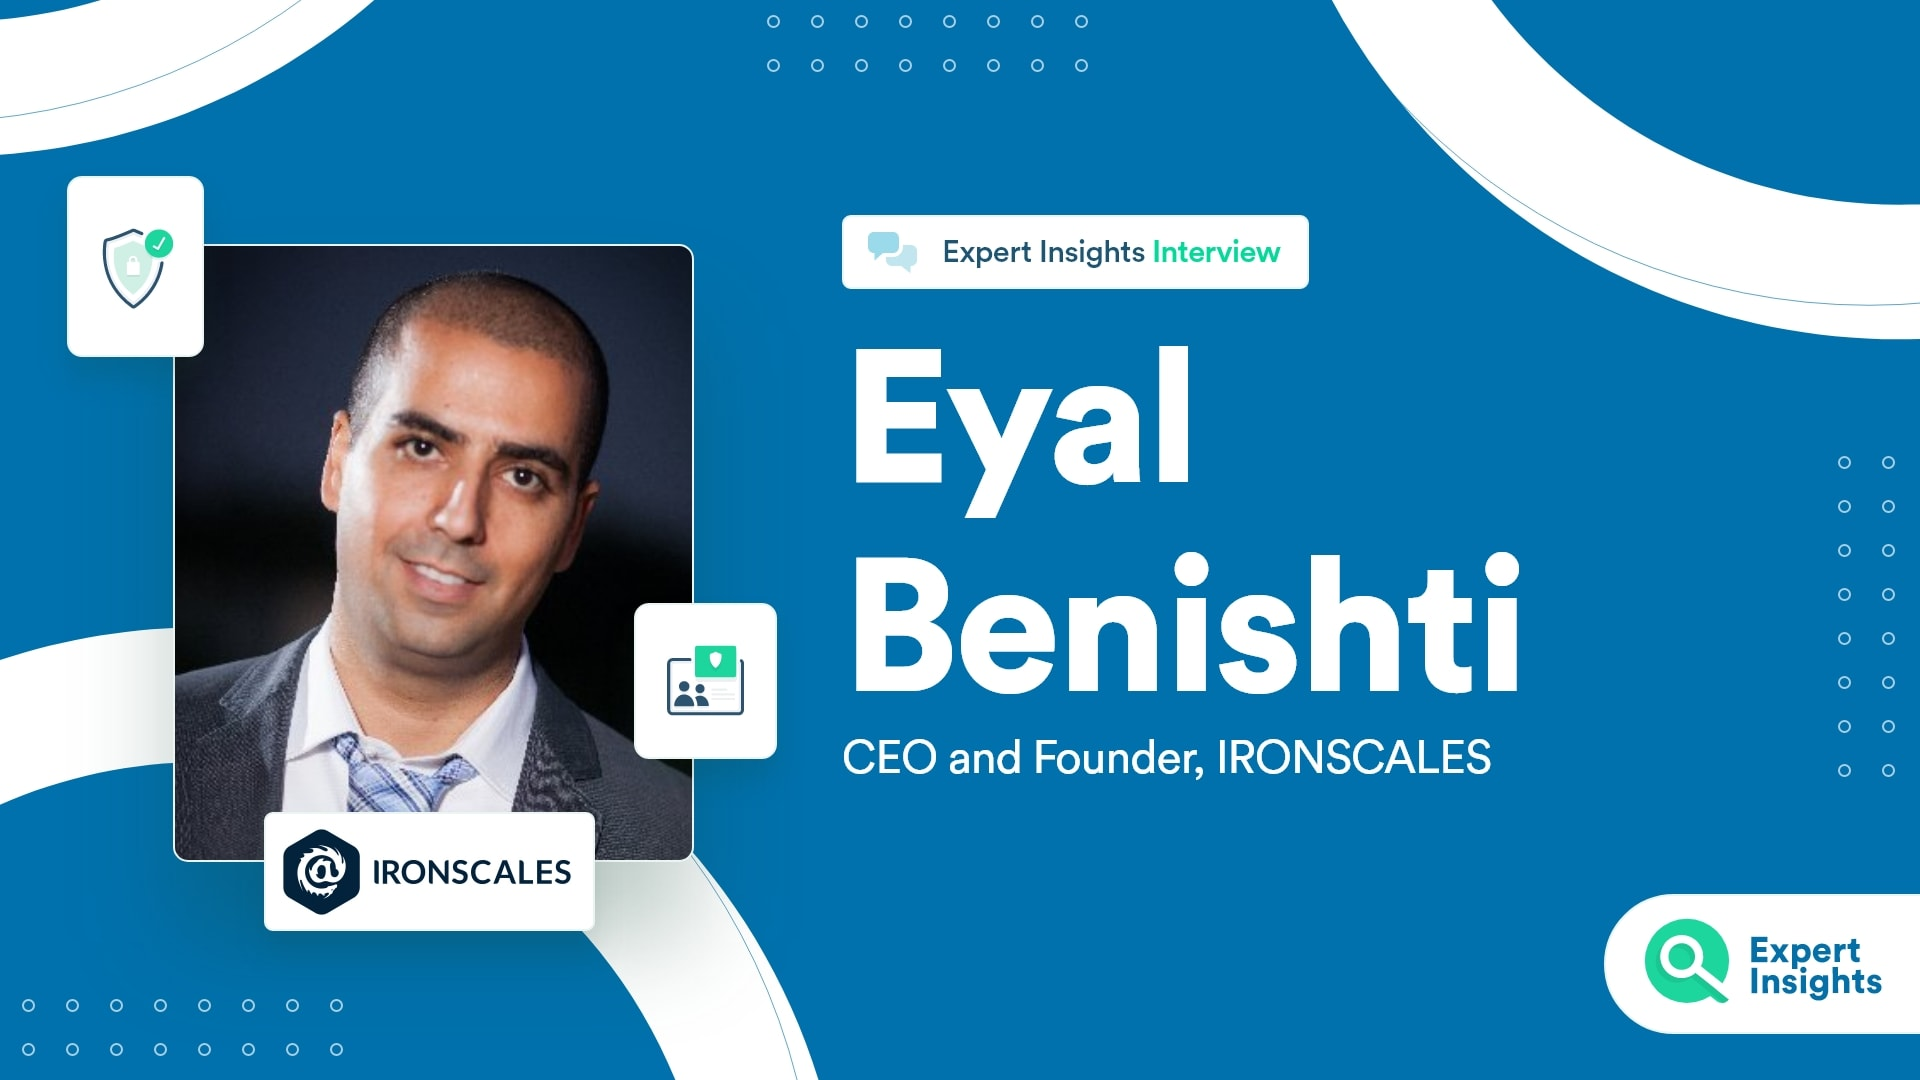 Expert Insights Interview With Eyal Benishti Of IRONSCALES